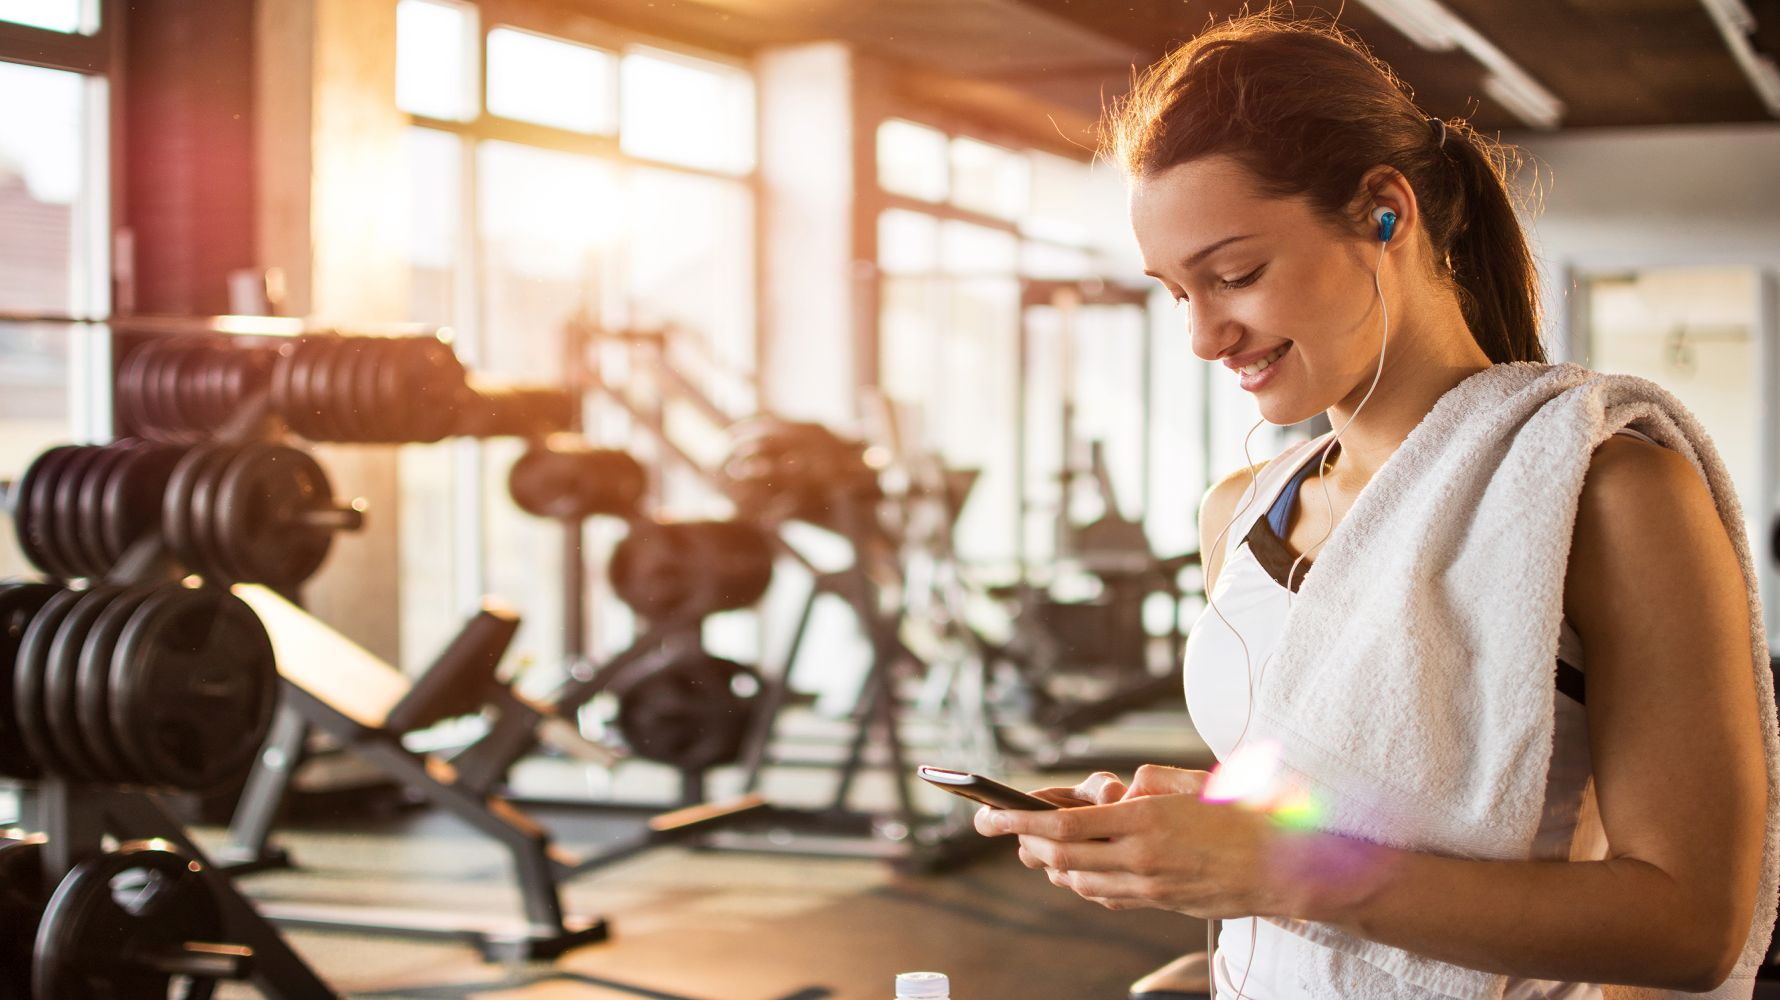 Five tips for gaining exercise habits